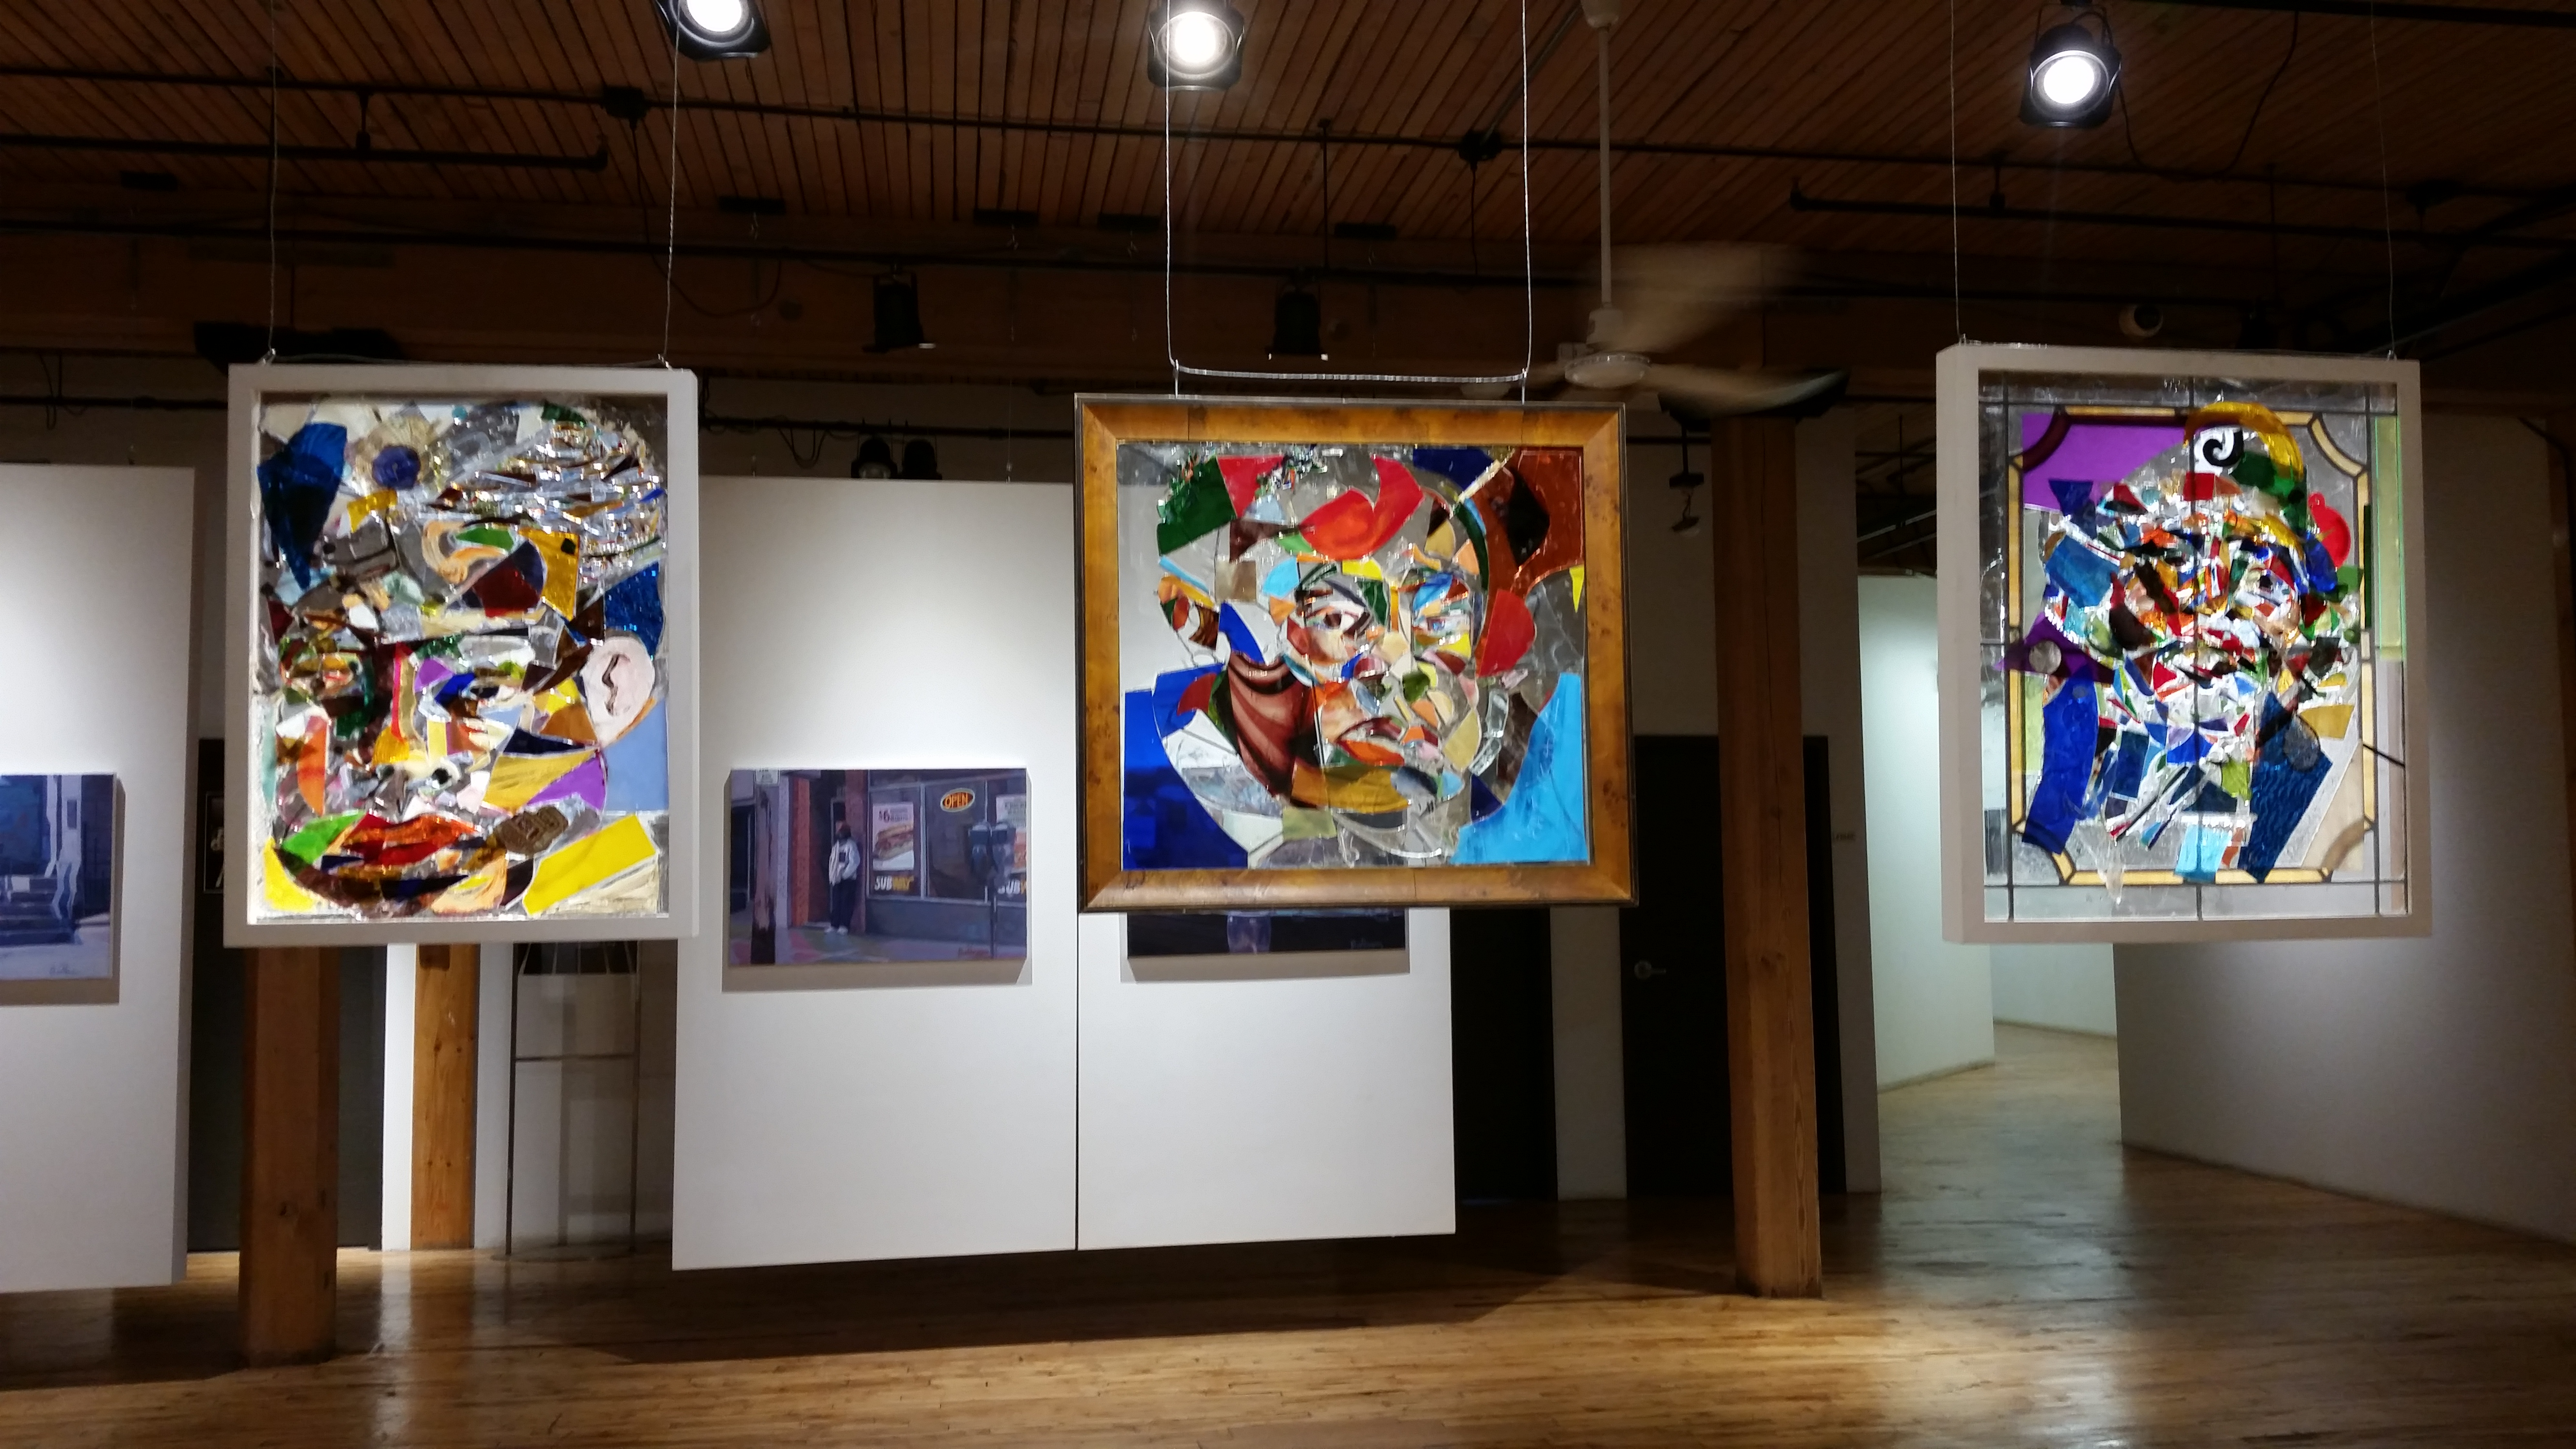 Installation view with works by Dalton Brown, Winter 2016